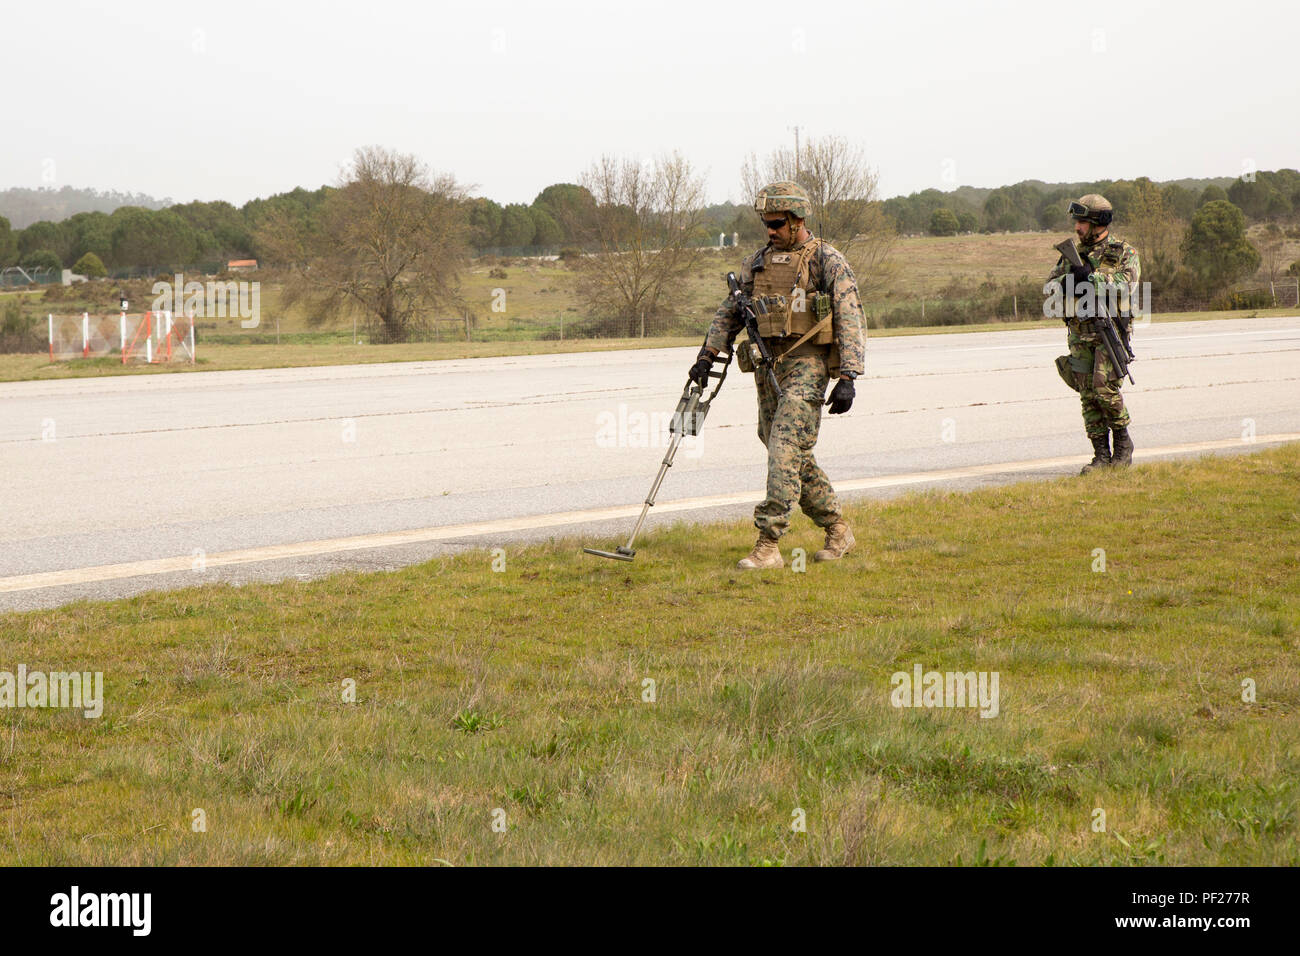 Sergeant Jose Cabrera, a squad leader with Special-Purpose Marine Air-Ground Task Force Crisis Response- Africa, sweeps the airfield for possible explosives alongside a Portuguese Marine during an airfield seizure exercise as part of Operation Real Thaw in Seia, Portugal, Feb. 22, 2016. Marines with SPMAGTF-CR-AF are continuously conducting bilateral training with partner nations to sustain and improve core mission essential tasks and build interoperability to prepare for real world operations on the African continent. (U.S. Marine Corps photo by Sgt. Tia Nagle) - Stock Image